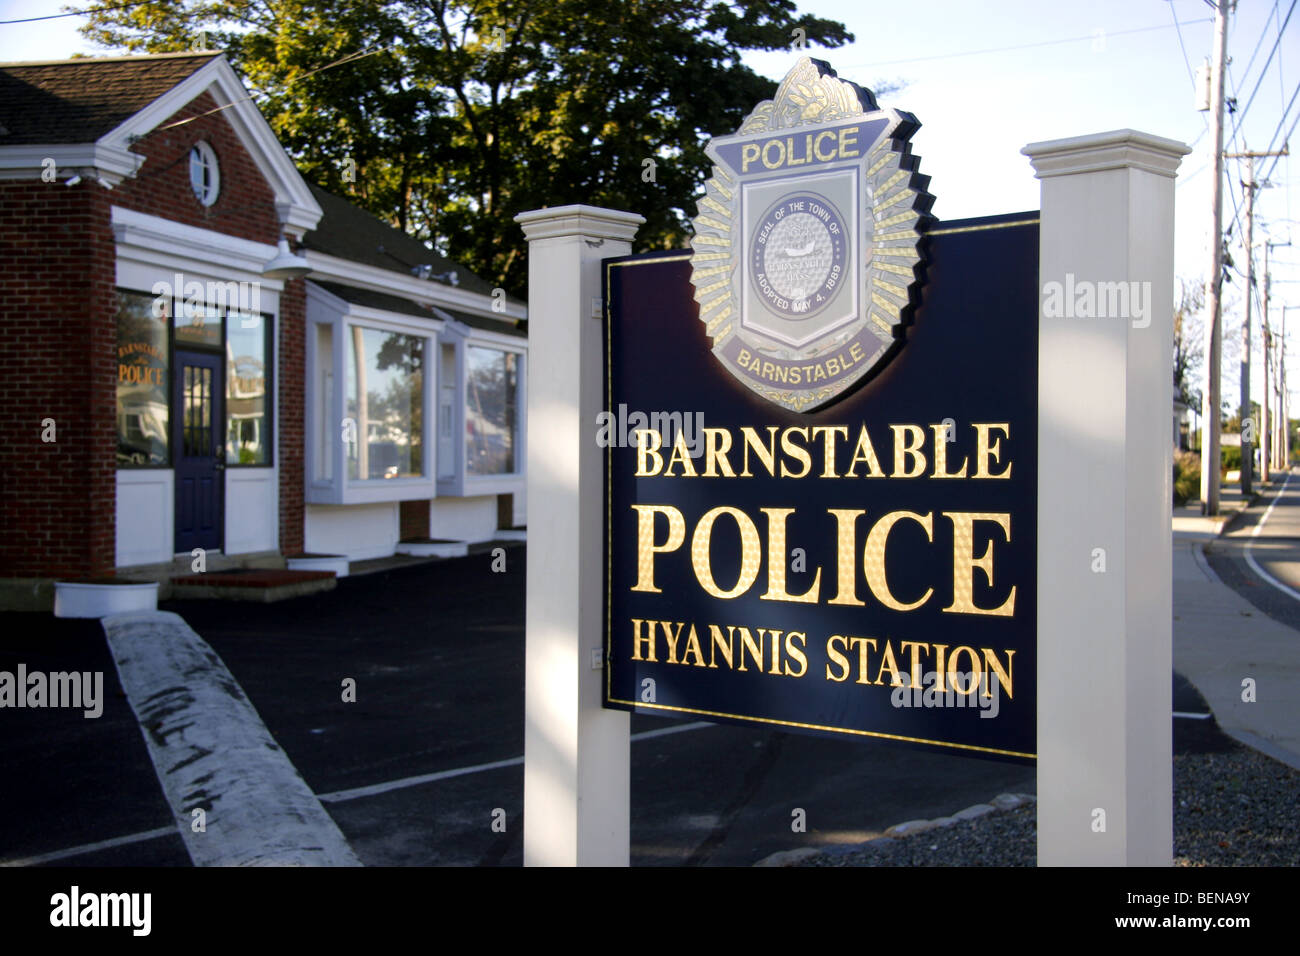 Barnstable police station at Hyannis, Cape Cod